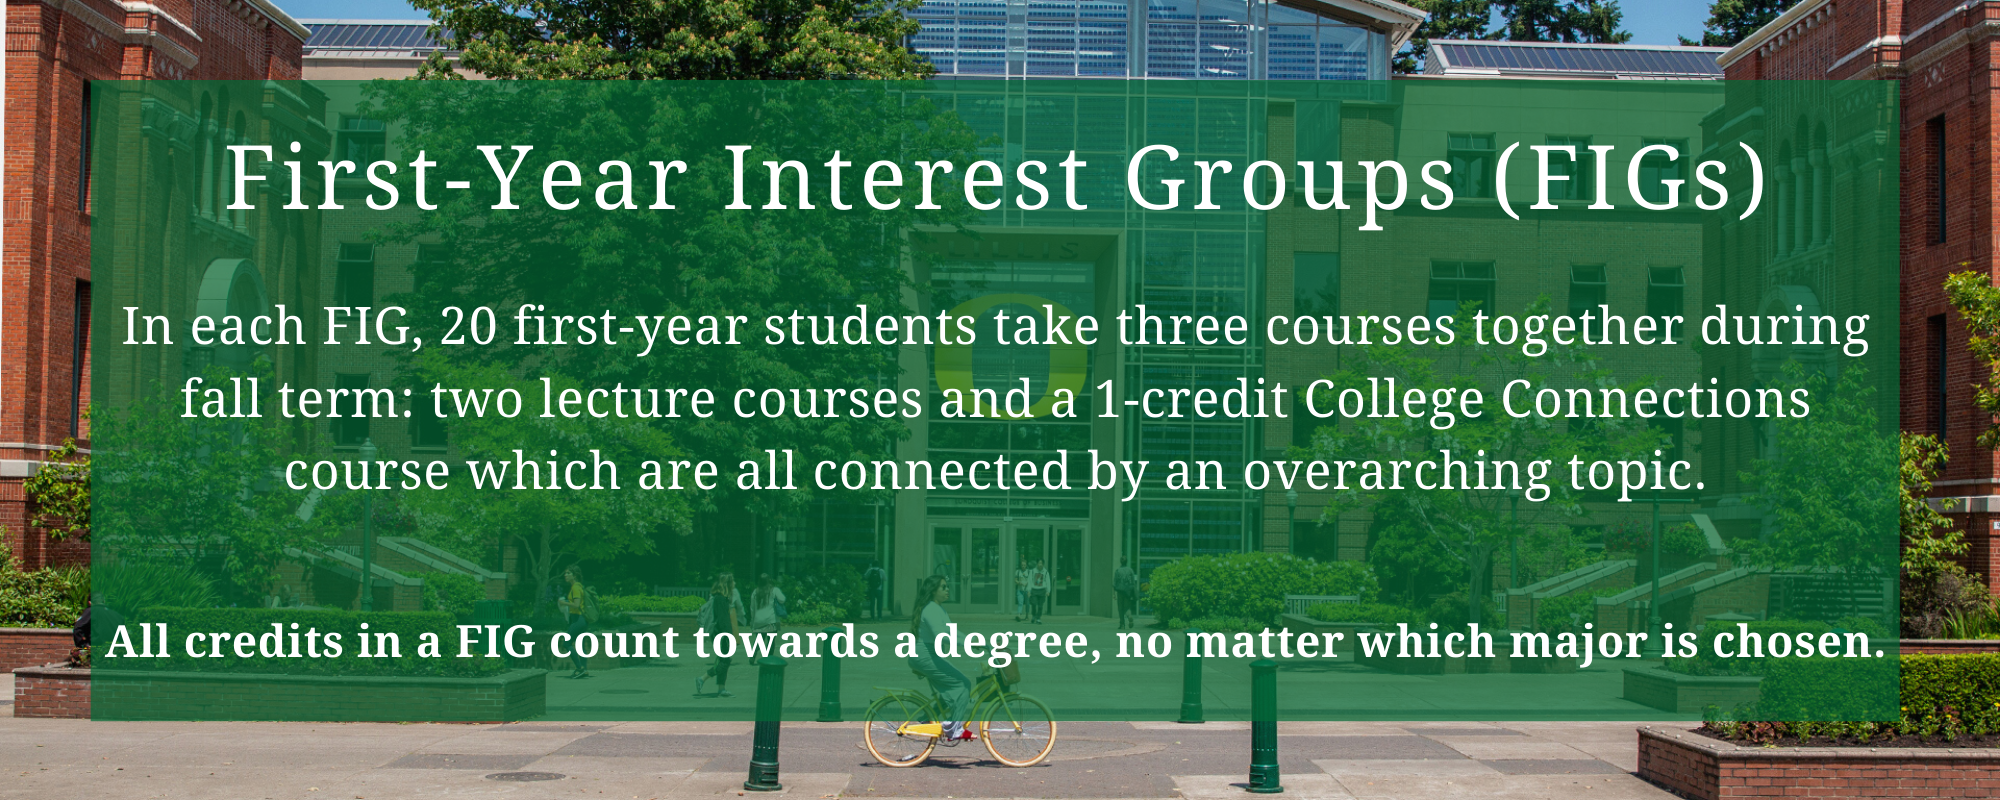 In each FIG, 20 first-year students take three courses together during fall term: two lecture courses and a 1-credit College Connections course which are all connected by an overarching topic.